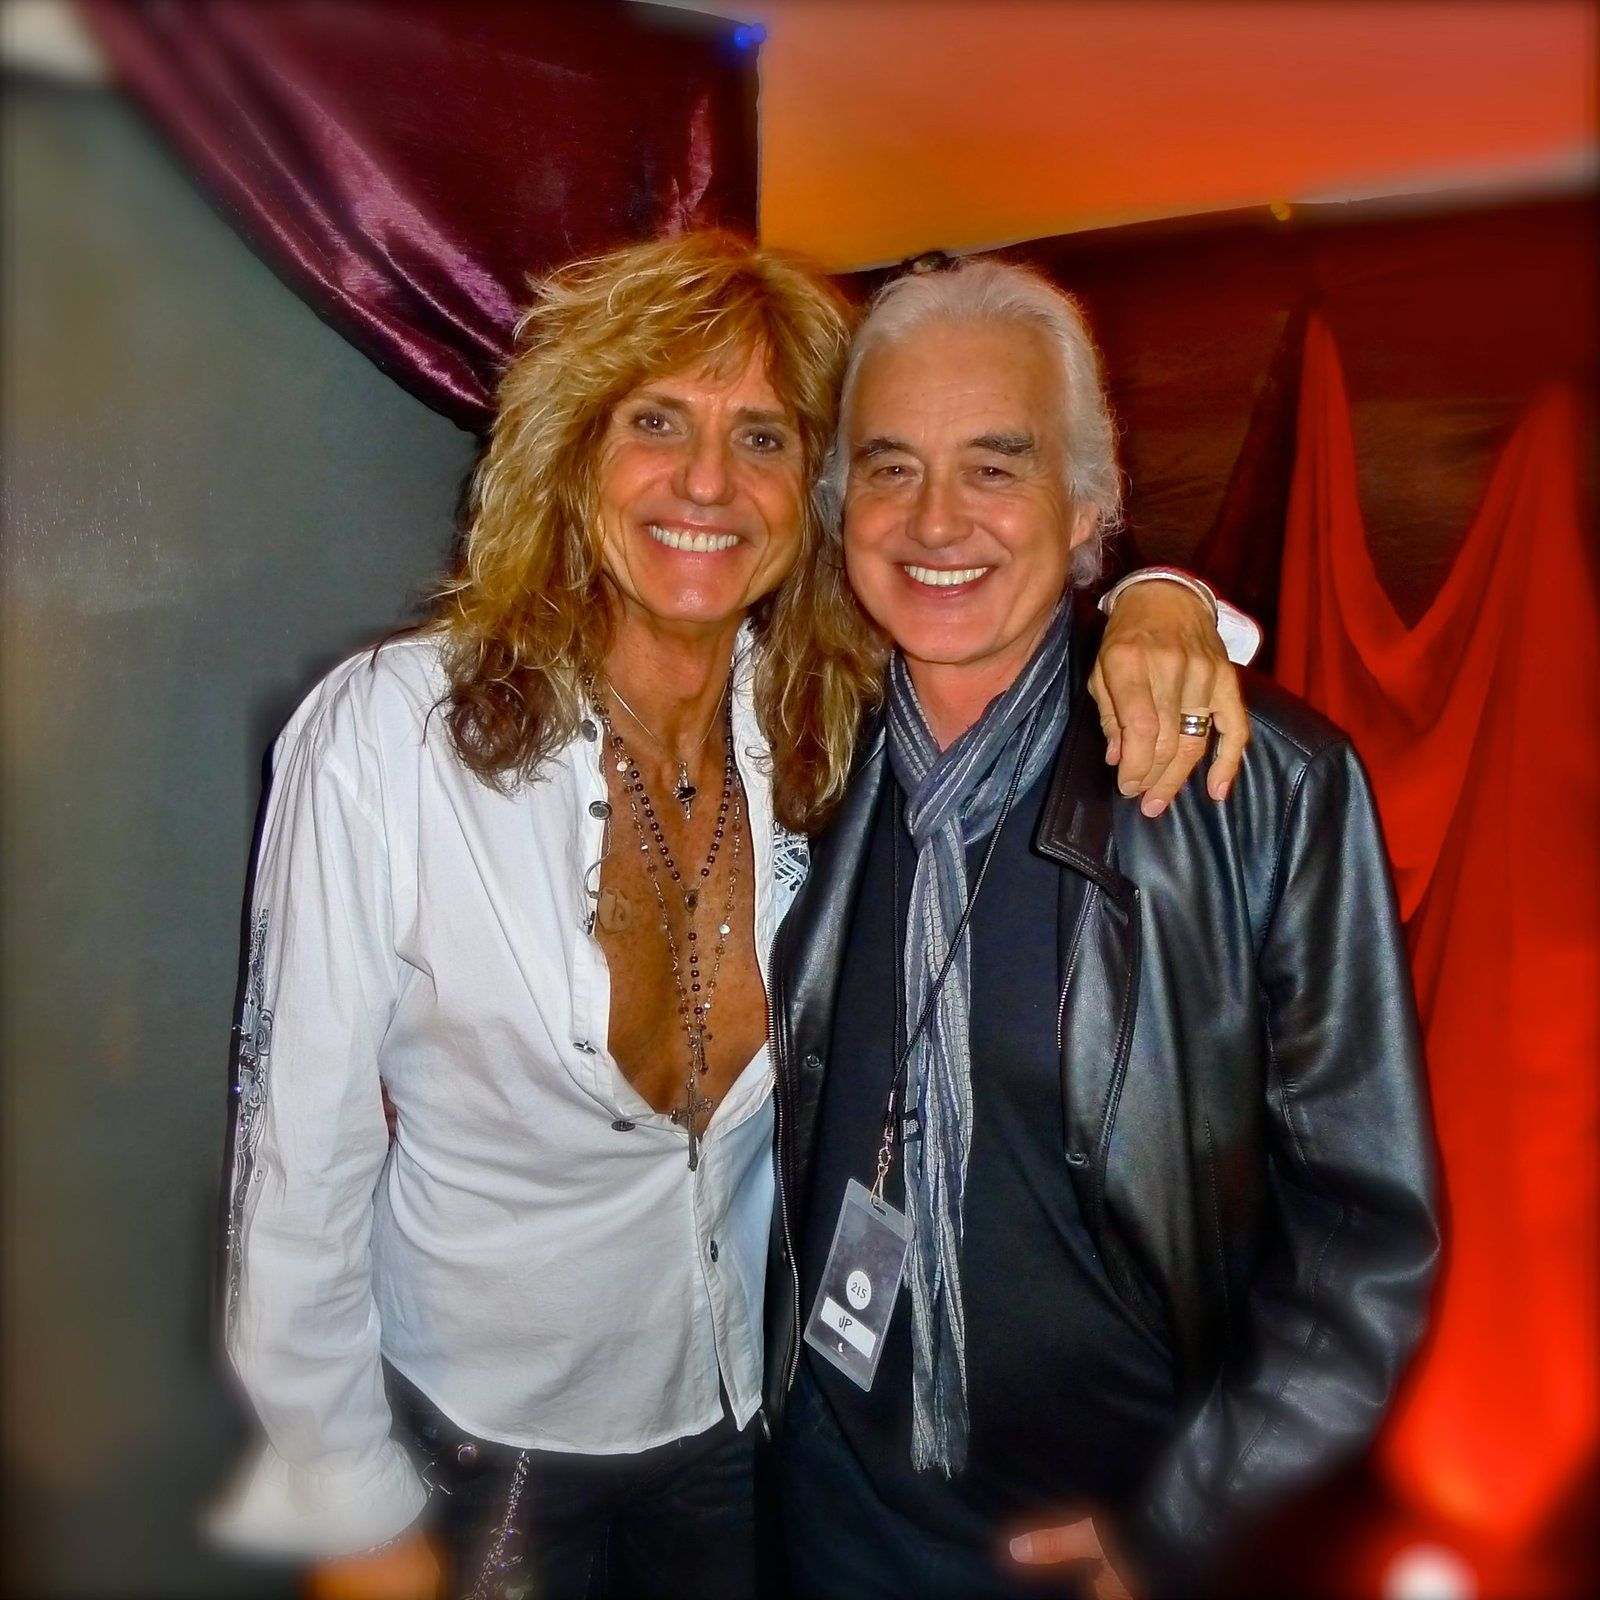 David Coverdale and Jimmy Page